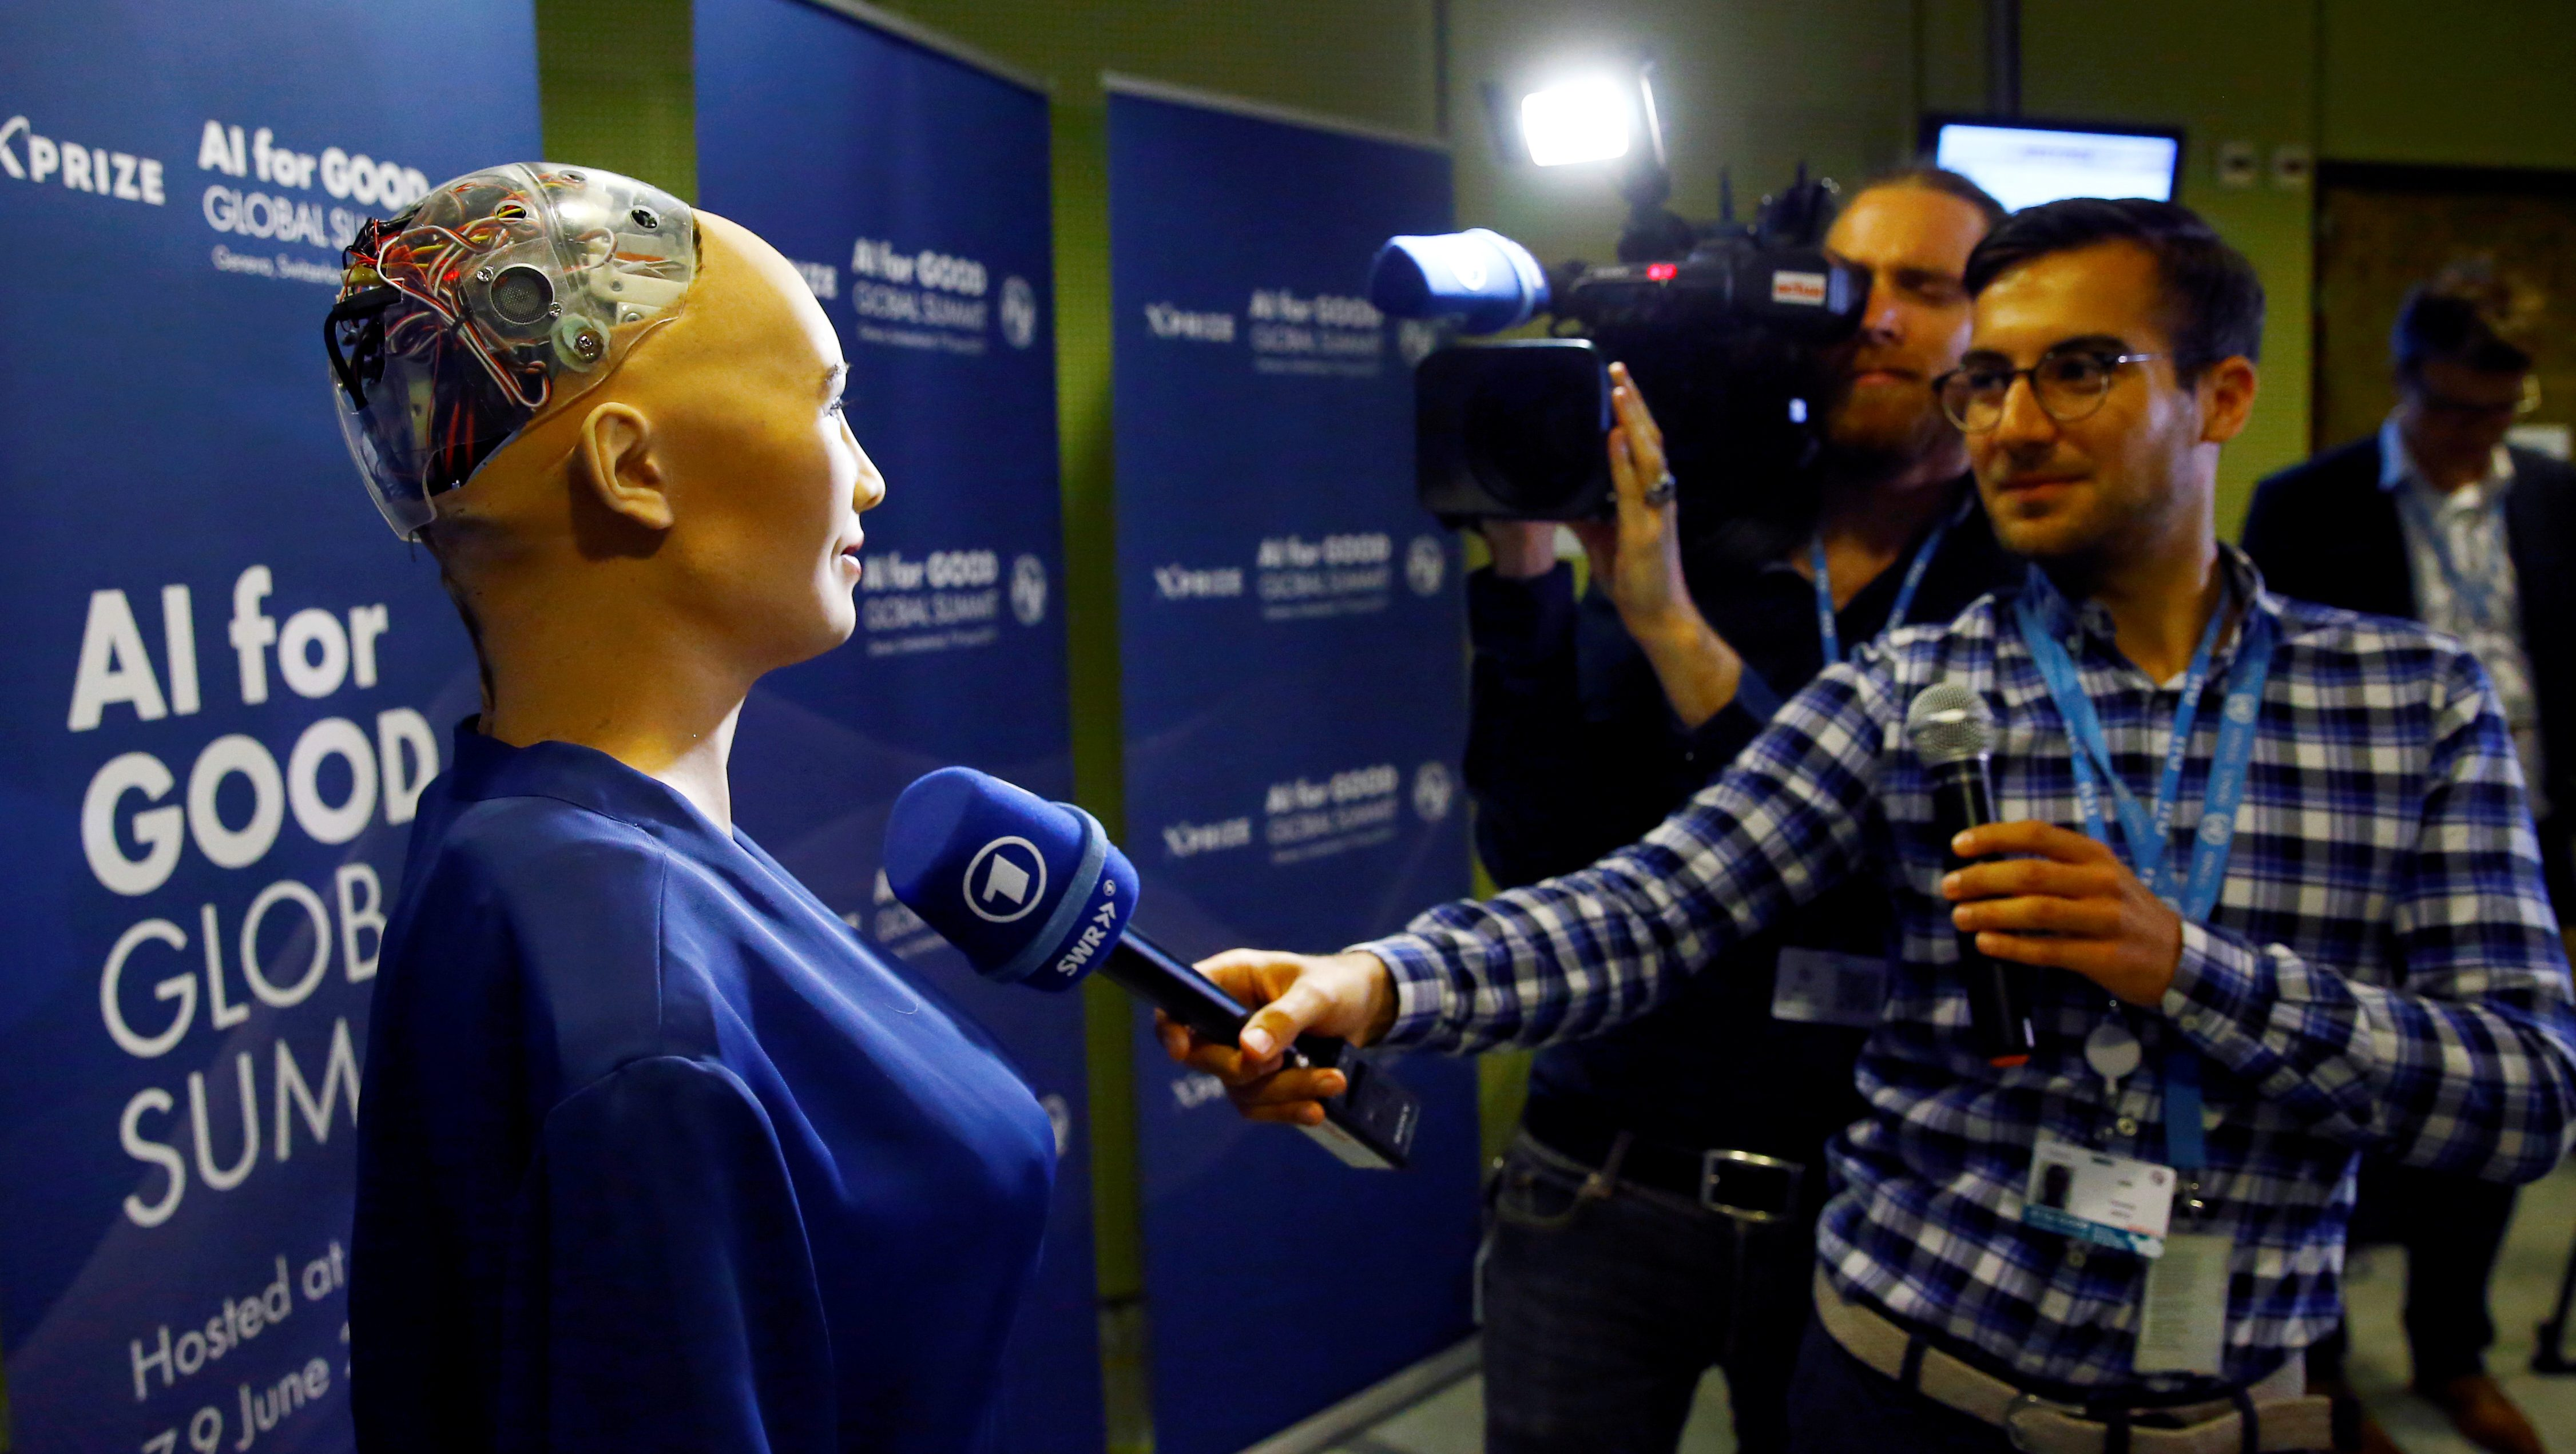 """A TV crew interviews Sophia, a robot integrating the latest technologies and artificial intelligence created by Hanson Robotics, during a presentation at the """"AI for Good"""" Global Summit at the International Telecommunication Union (ITU) in Geneva, Switzerland June 7, 2017. REUTERS/Denis Balibouse - RC167AA4E9D0"""